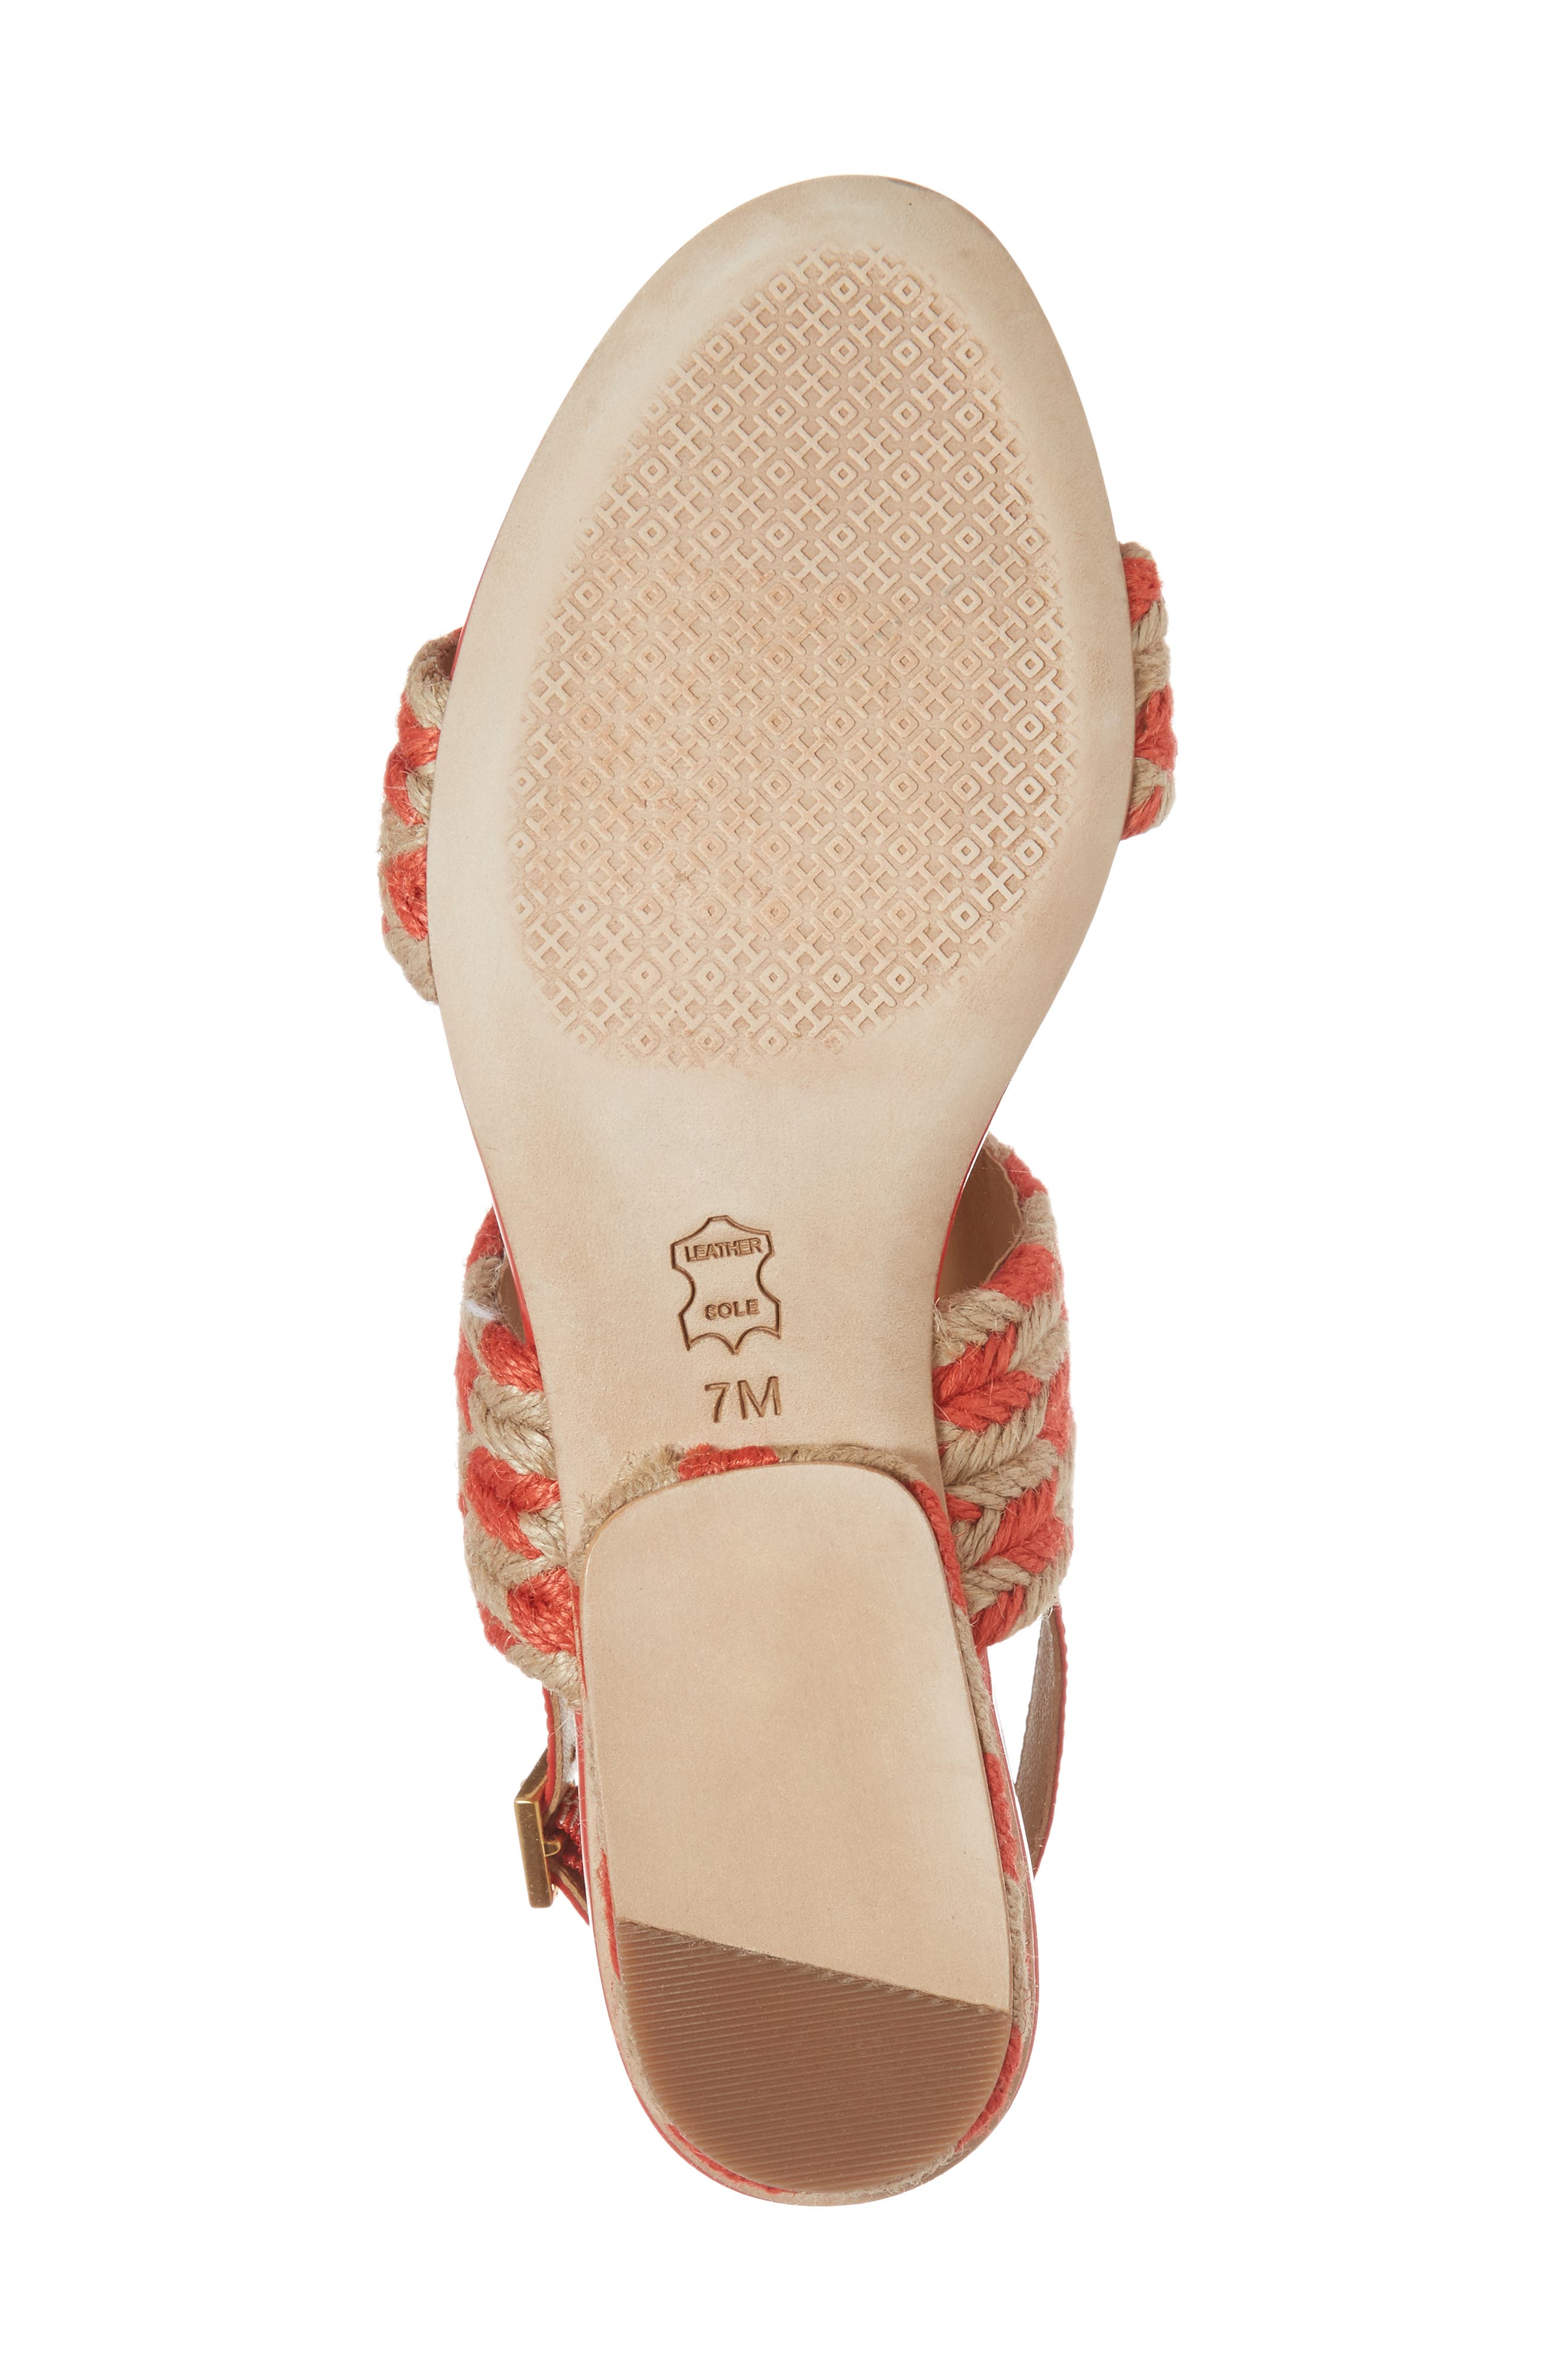 Lola Slingback Sandal,                             Alternate thumbnail 6, color,                             Poppy Orange/ Perfect Ivory